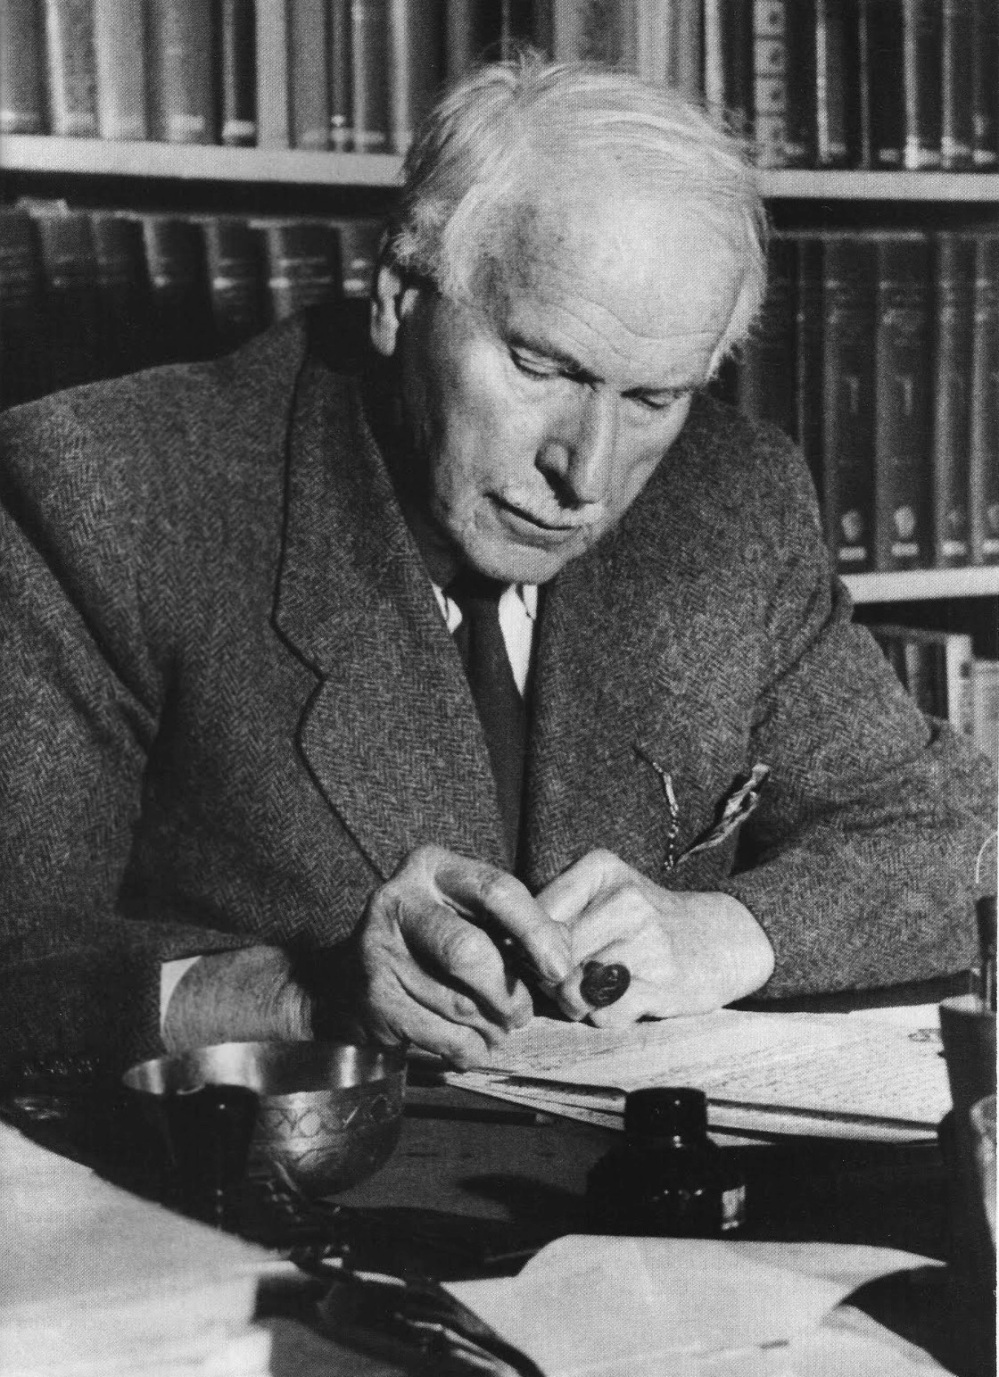 the life and works of carl gustav jung Jung, carl gustav kärl go͝os´täf yo͝ong [key], 1875-1961, swiss psychiatrist, founder of analytical psychology the son of a country pastor, he studied at basel (1895-1900) and zürich (md, 1902) after a stint at the university psychiatric clinic in zürich, jung worked (1902) under eugen bleuler at.